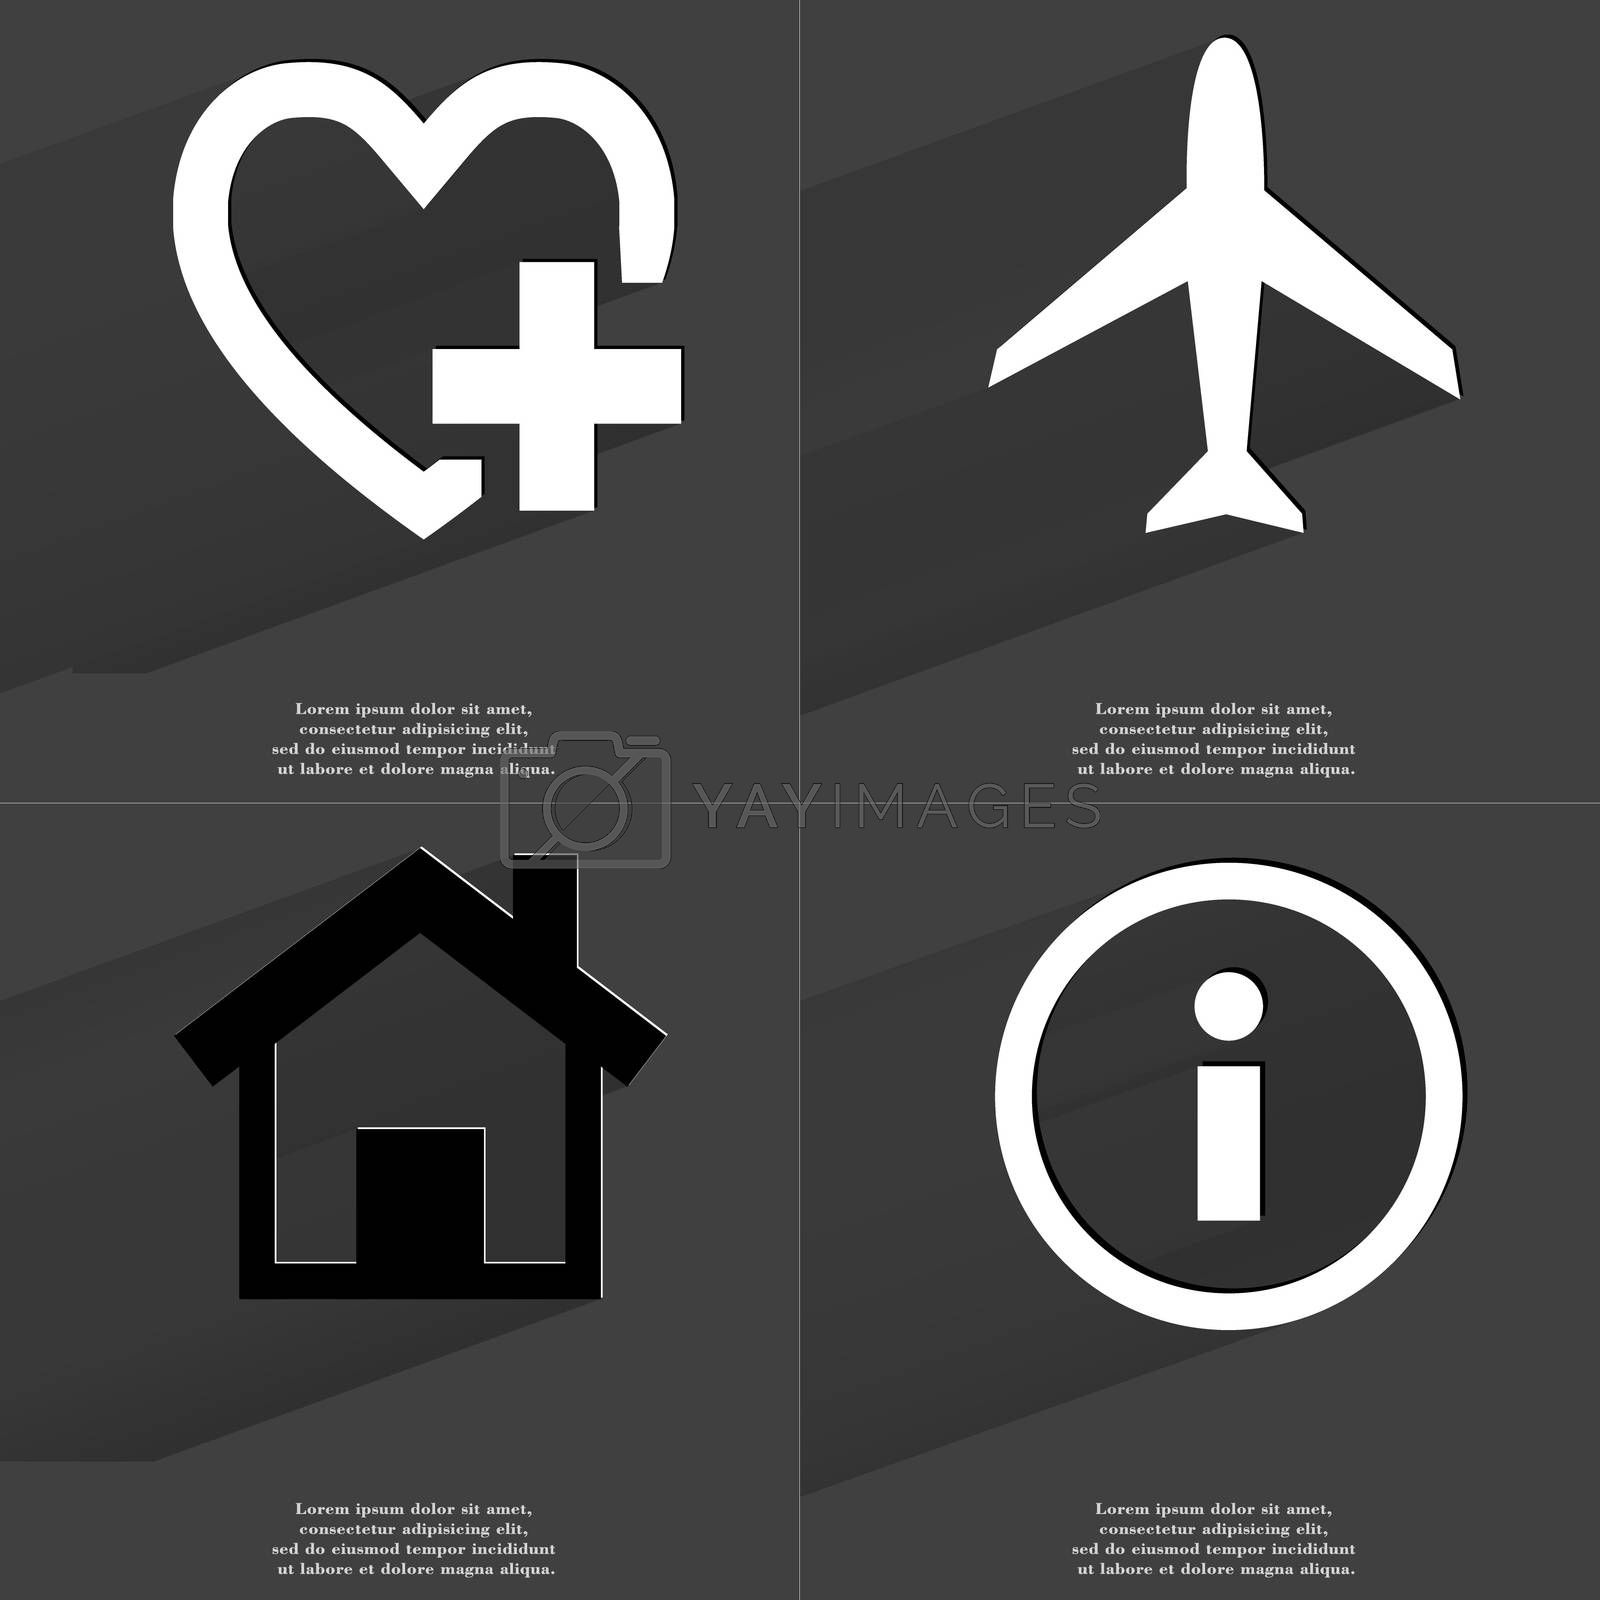 Royalty free image of Heart plus, Airplane, House, Information. Symbols with long shadow. Flat design by serhii_lohvyniuk